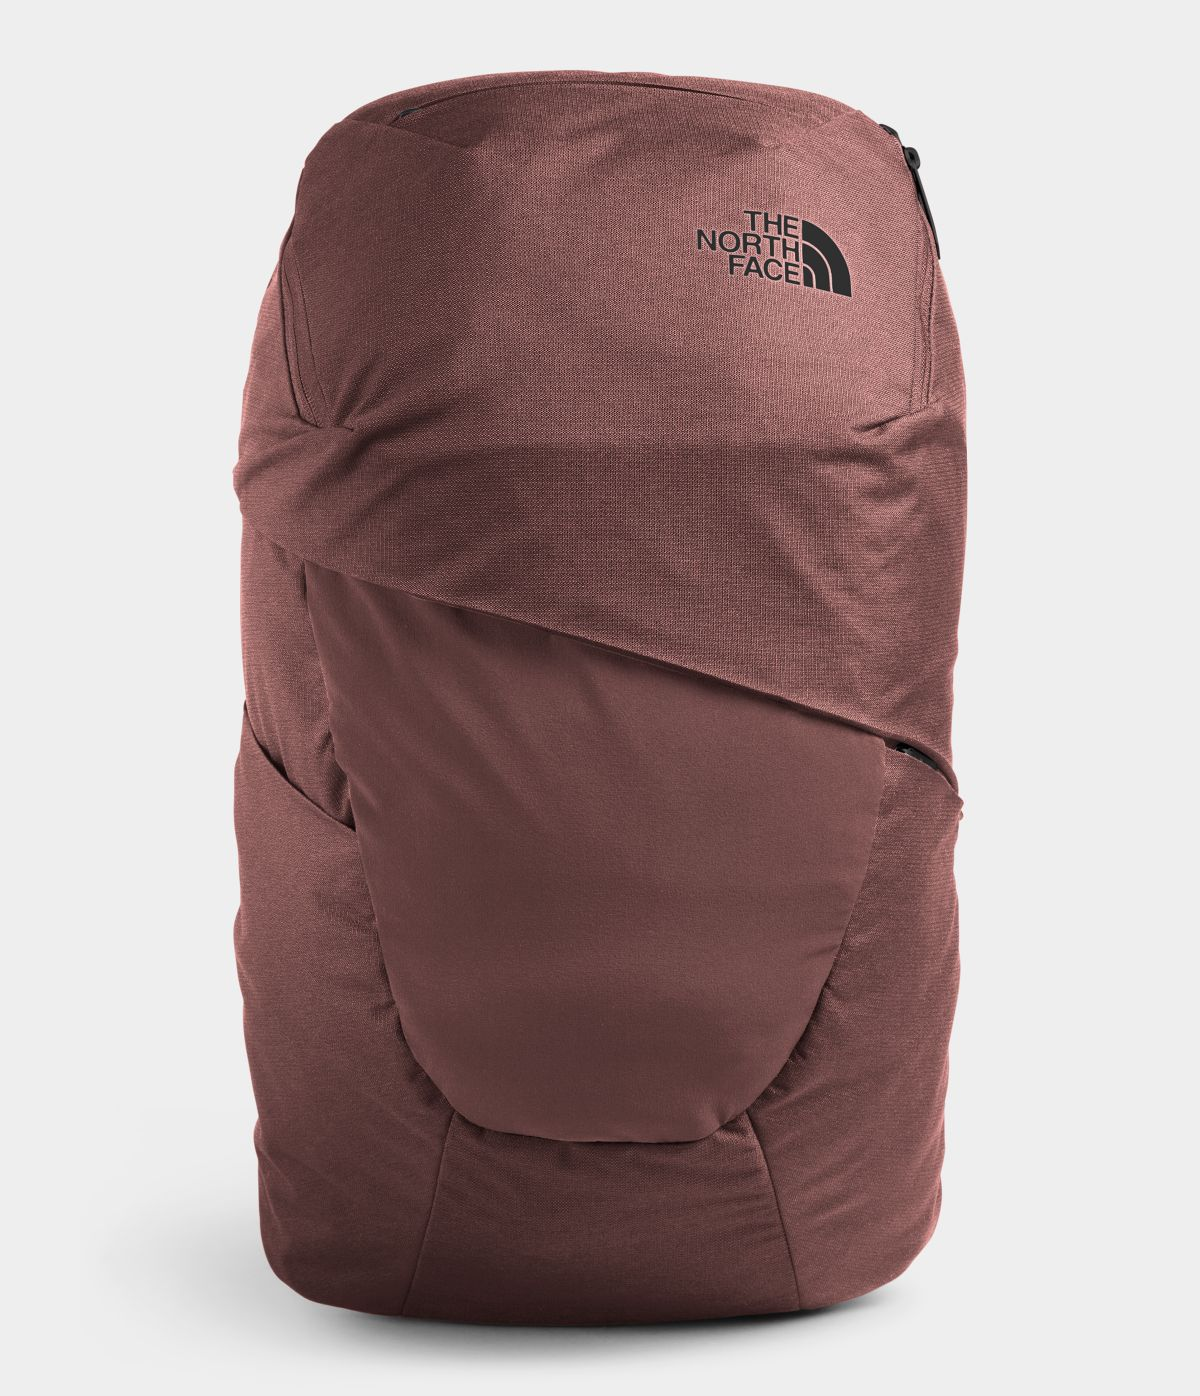 Women's The North Face Aurora Backpack in Marron Purple Dark Heather/TNF Black from front view